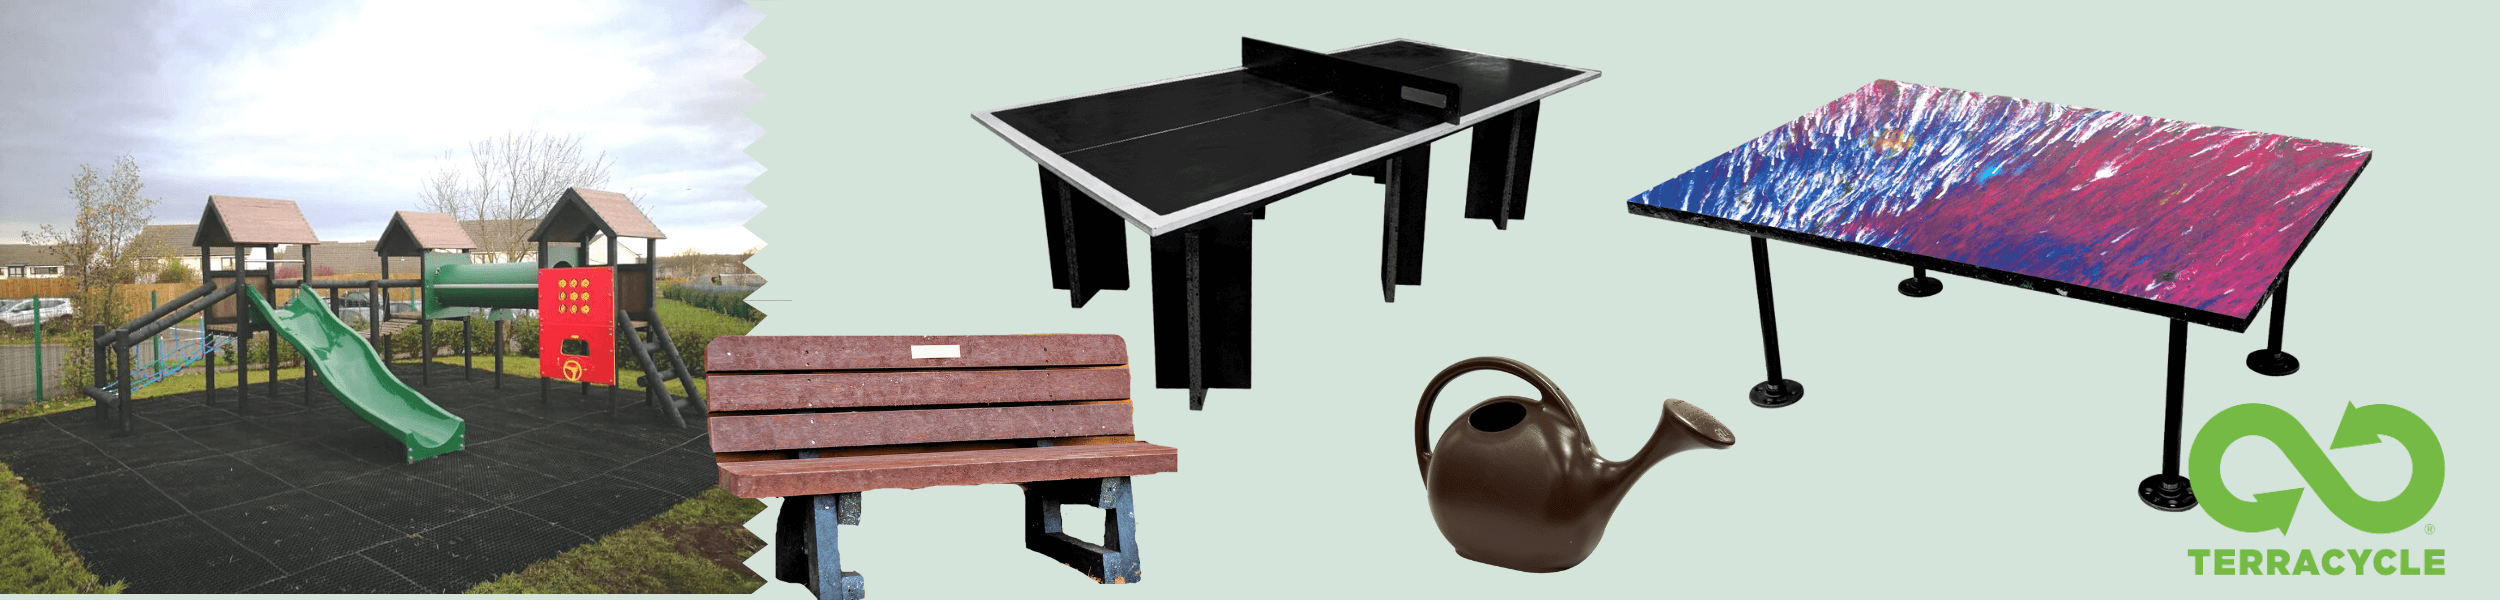 Images of items made by Terracycle including benches, tables, watering cans and even children's play equipment in a park